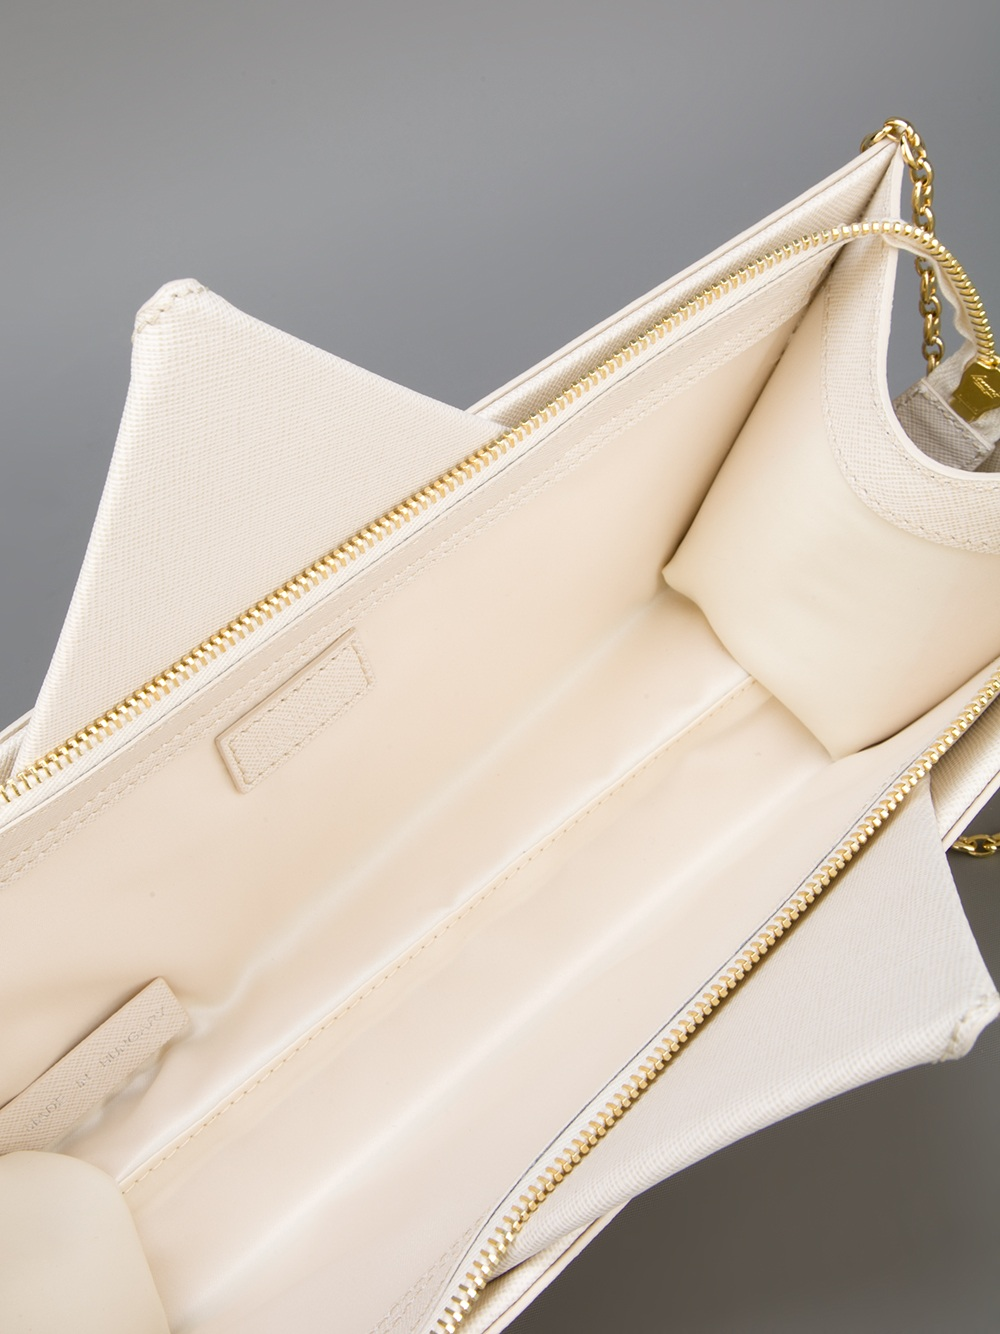 moschino-cheap-chic-nude-origami-boat-clutch-product-6-5857310-325480919